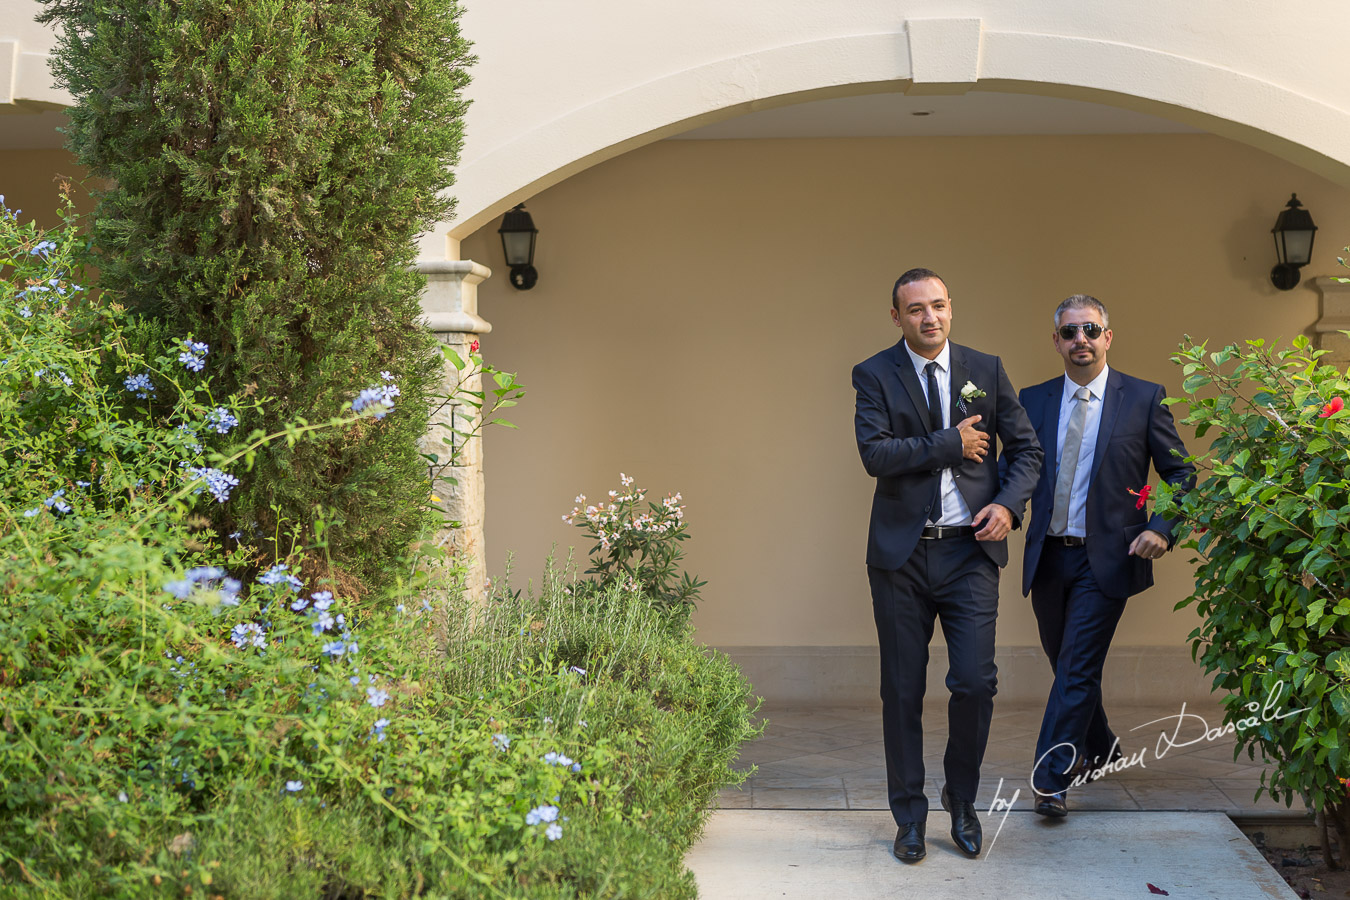 Wedding at Aphrodite Hills in Cyprus - 46